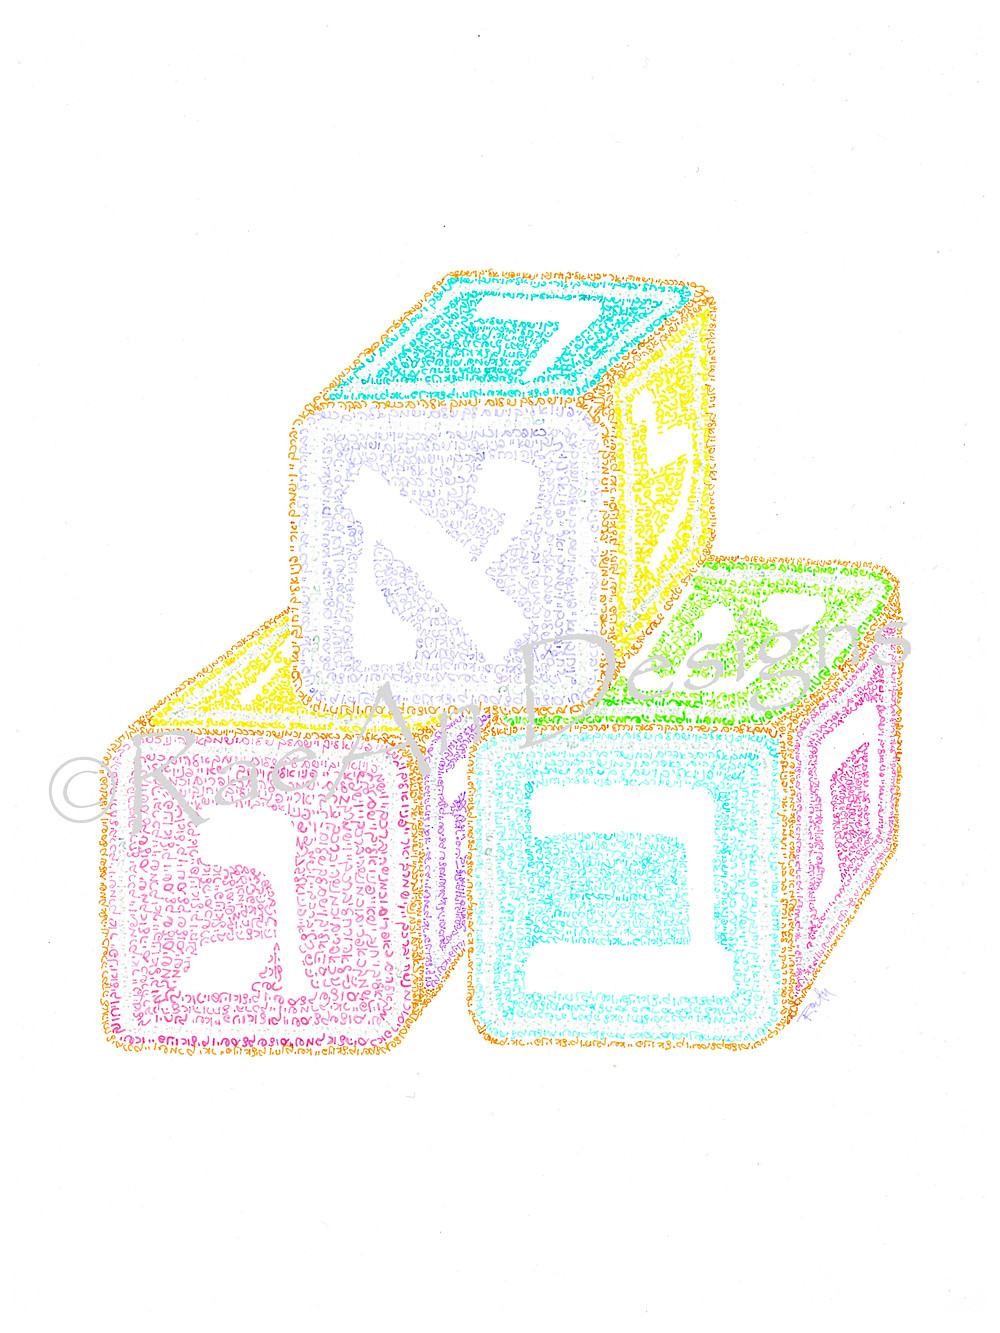 Baby Blocks Watermarked.jpg